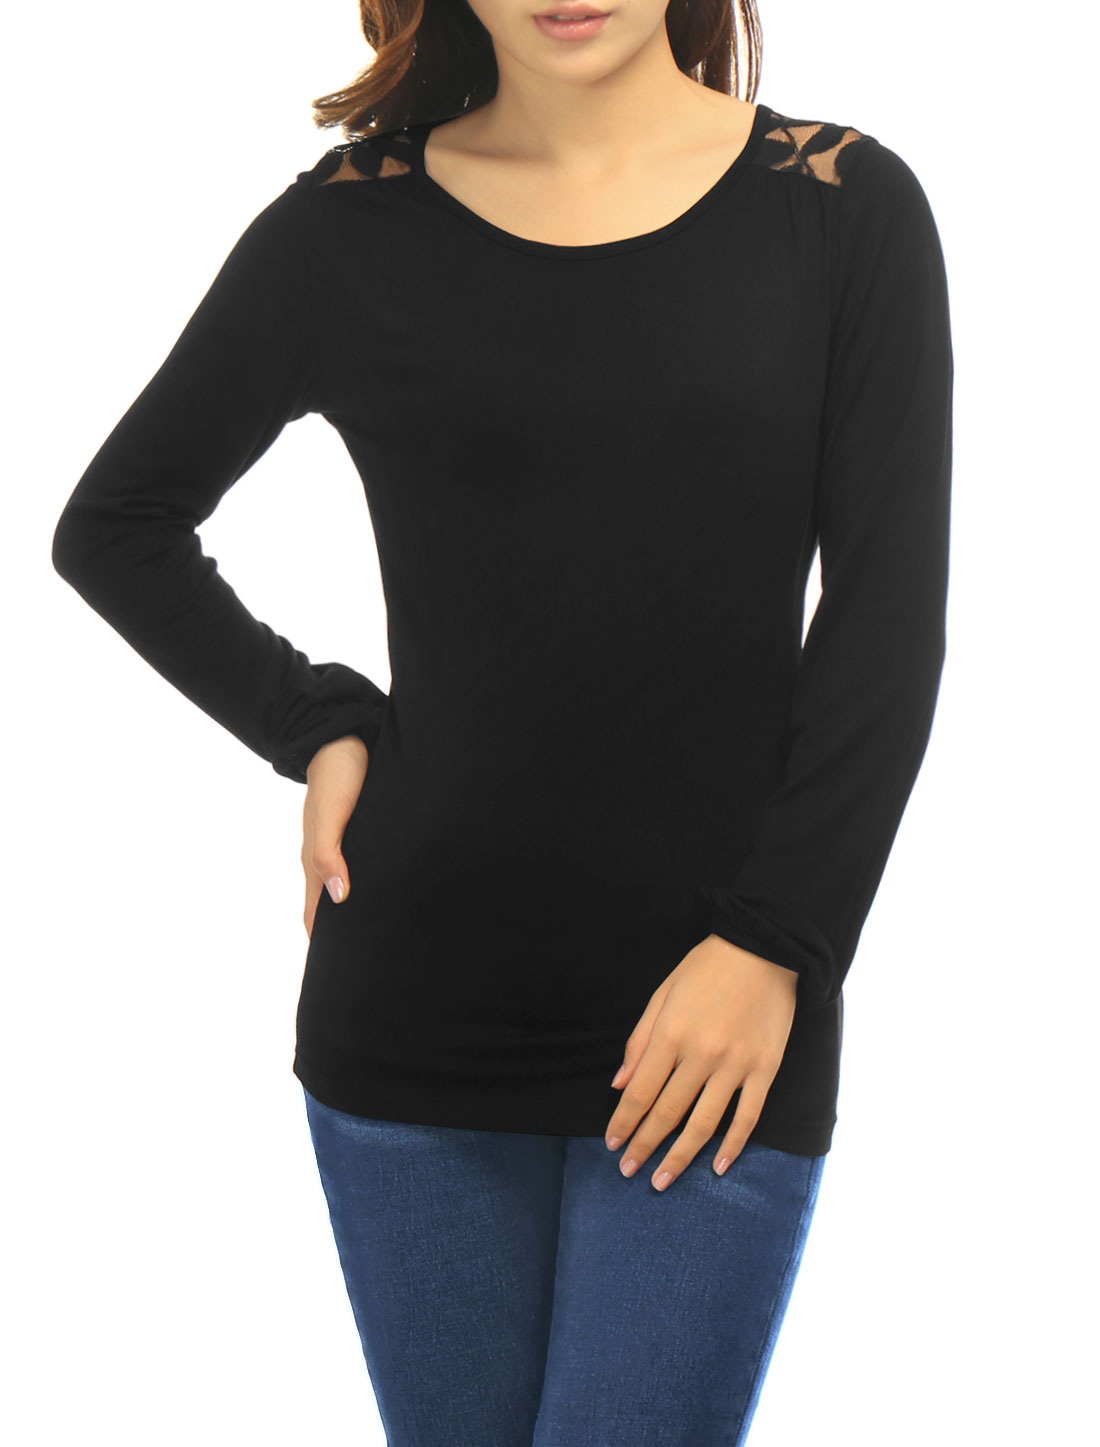 Woman Long Sleeves Scoop Neck Lace Panel Back Top Black L